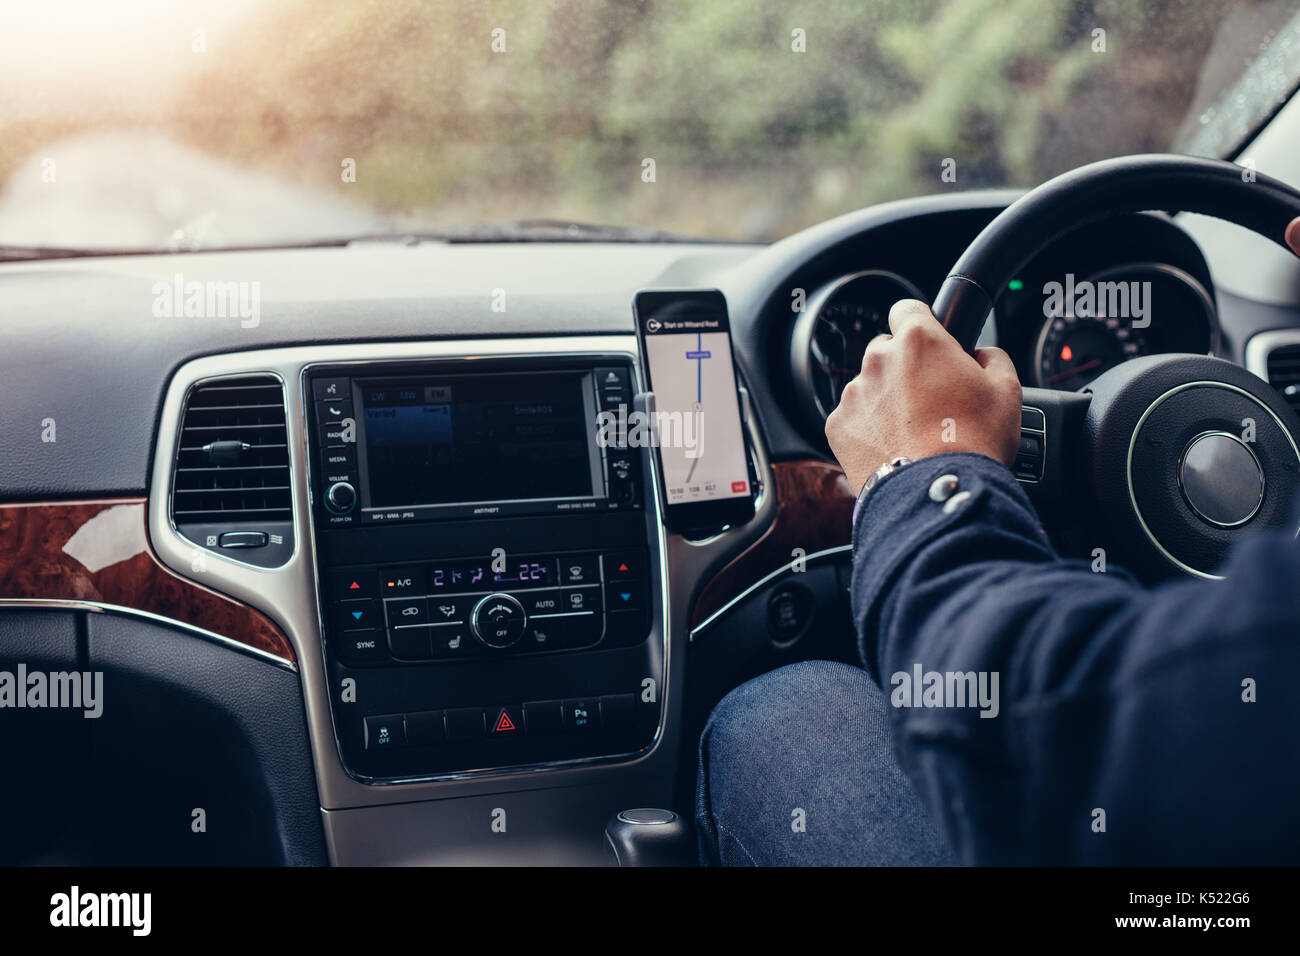 Man driving car with mobile navigation system. Male using mobile phone with map gps navigation in the car. - Stock Image